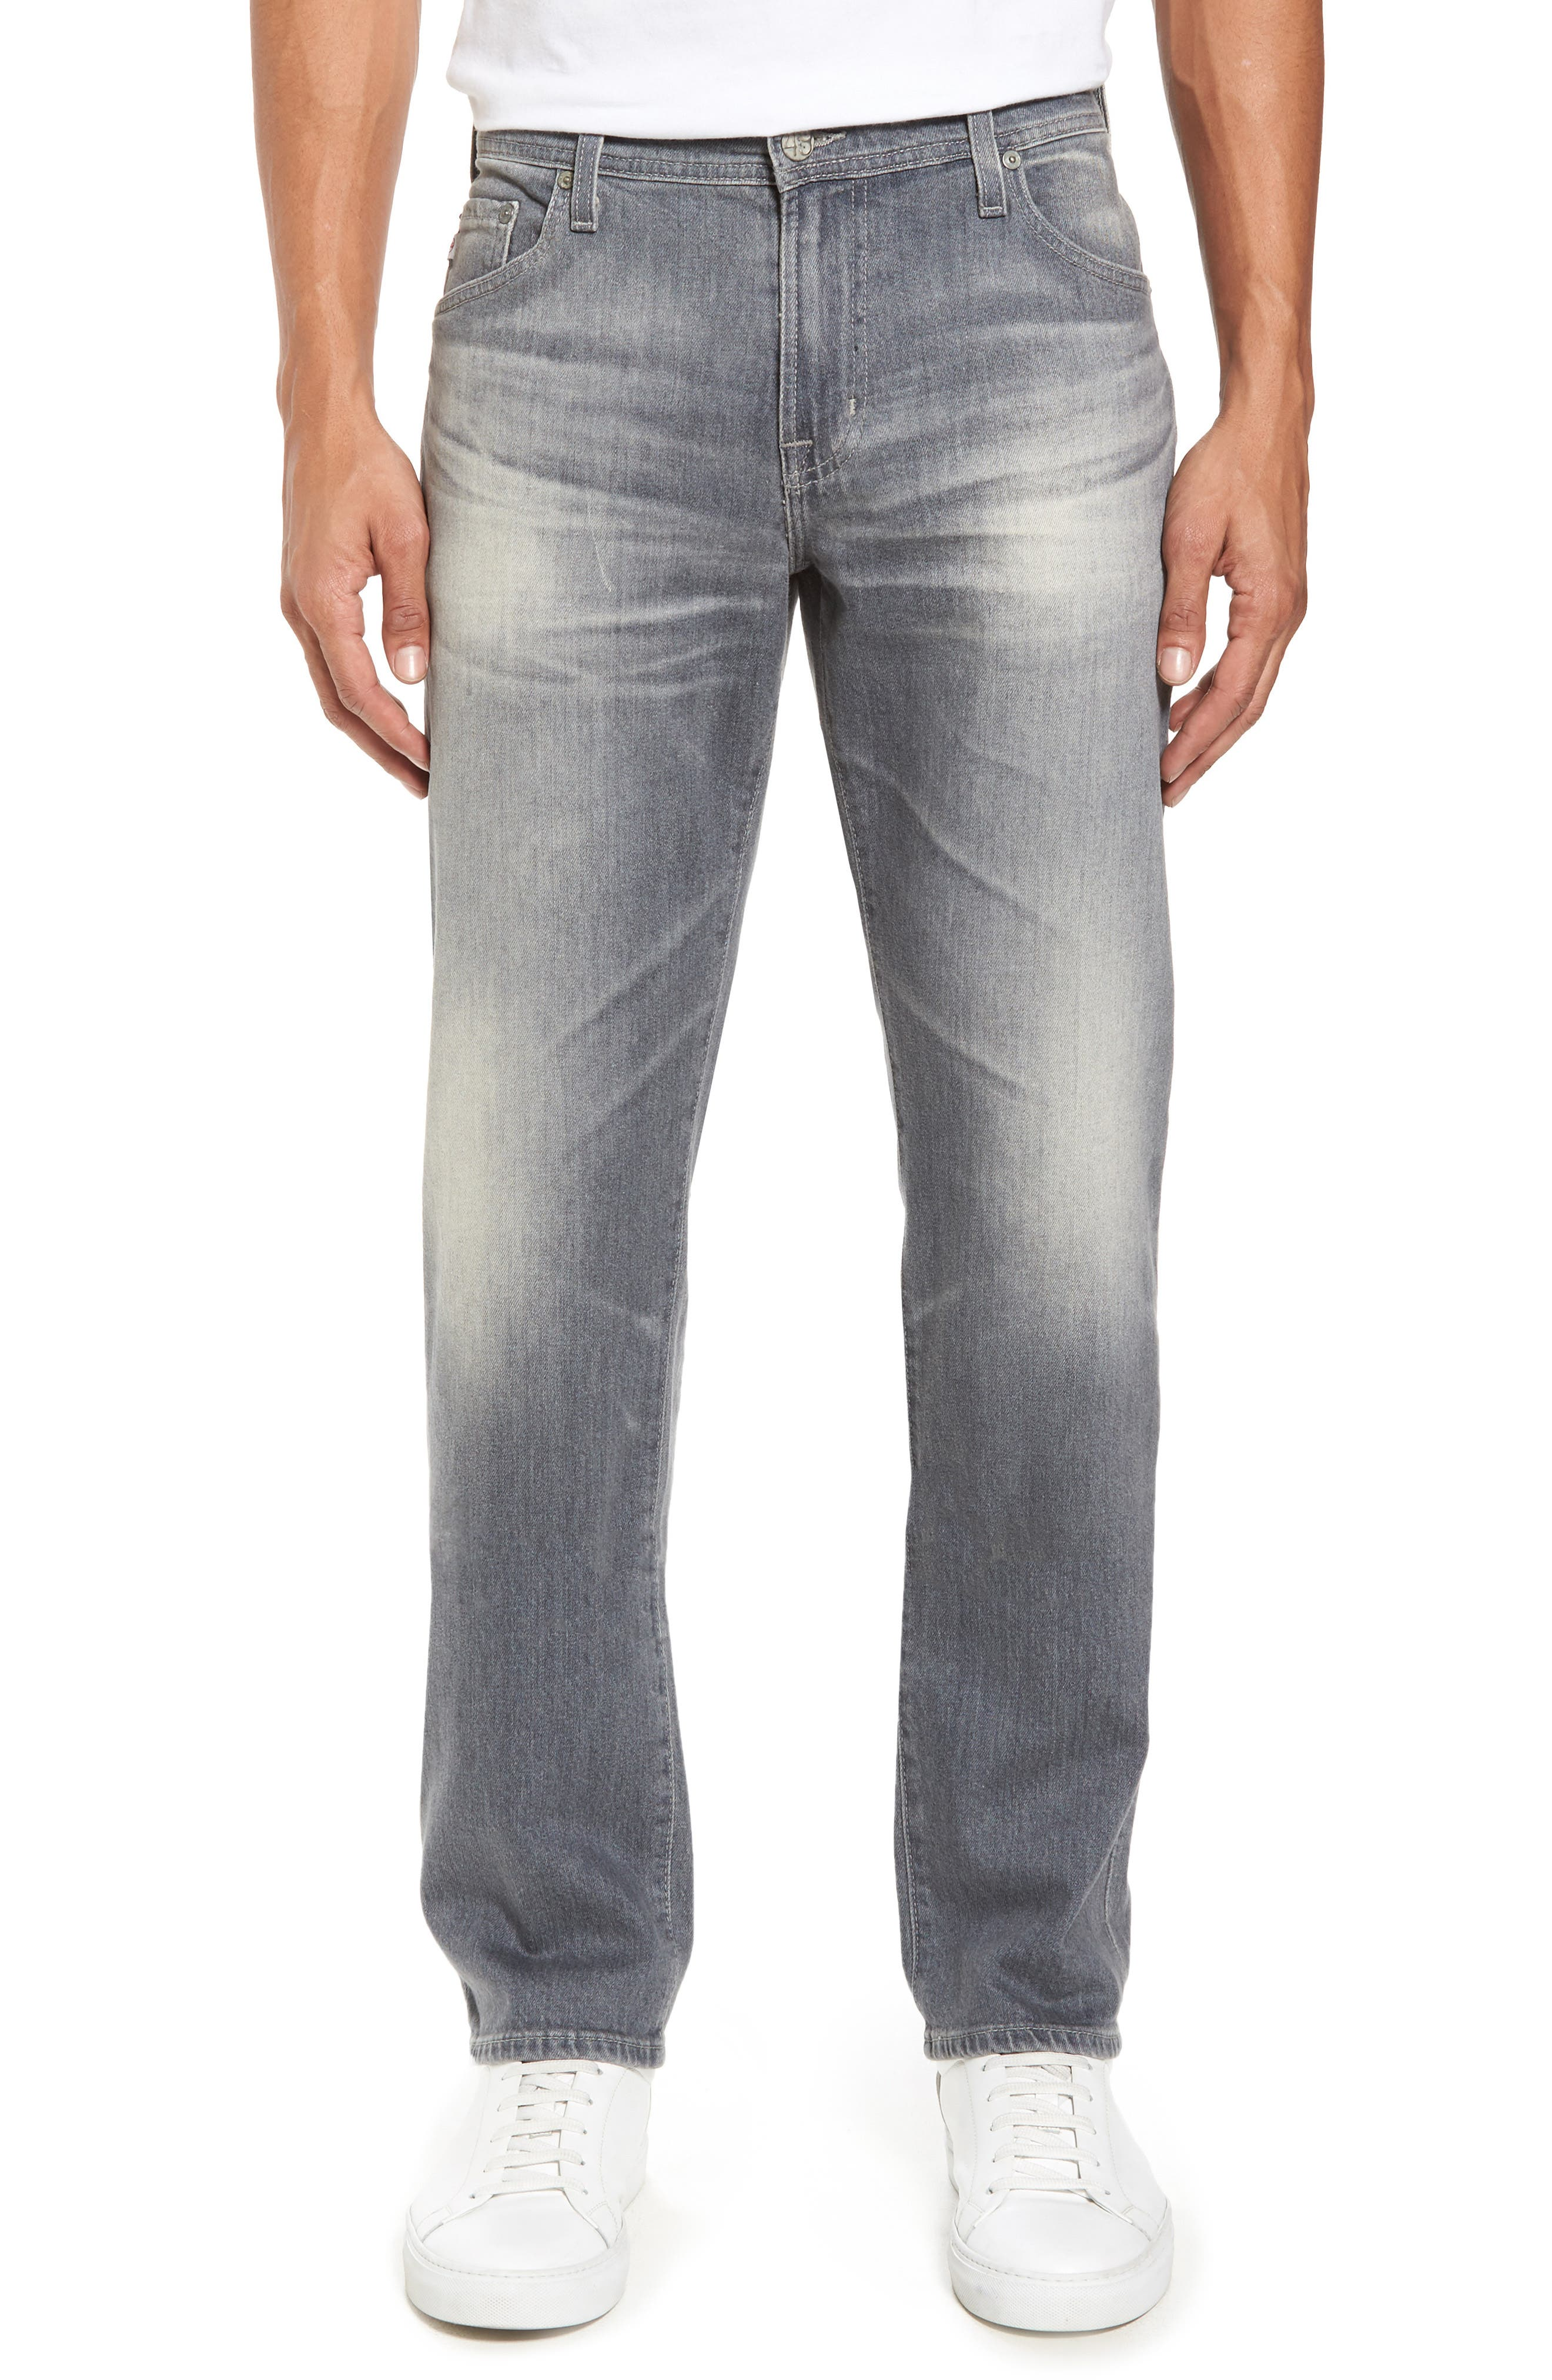 Graduate Slim Straight Fit Jeans,                         Main,                         color, 13 Years Fortress